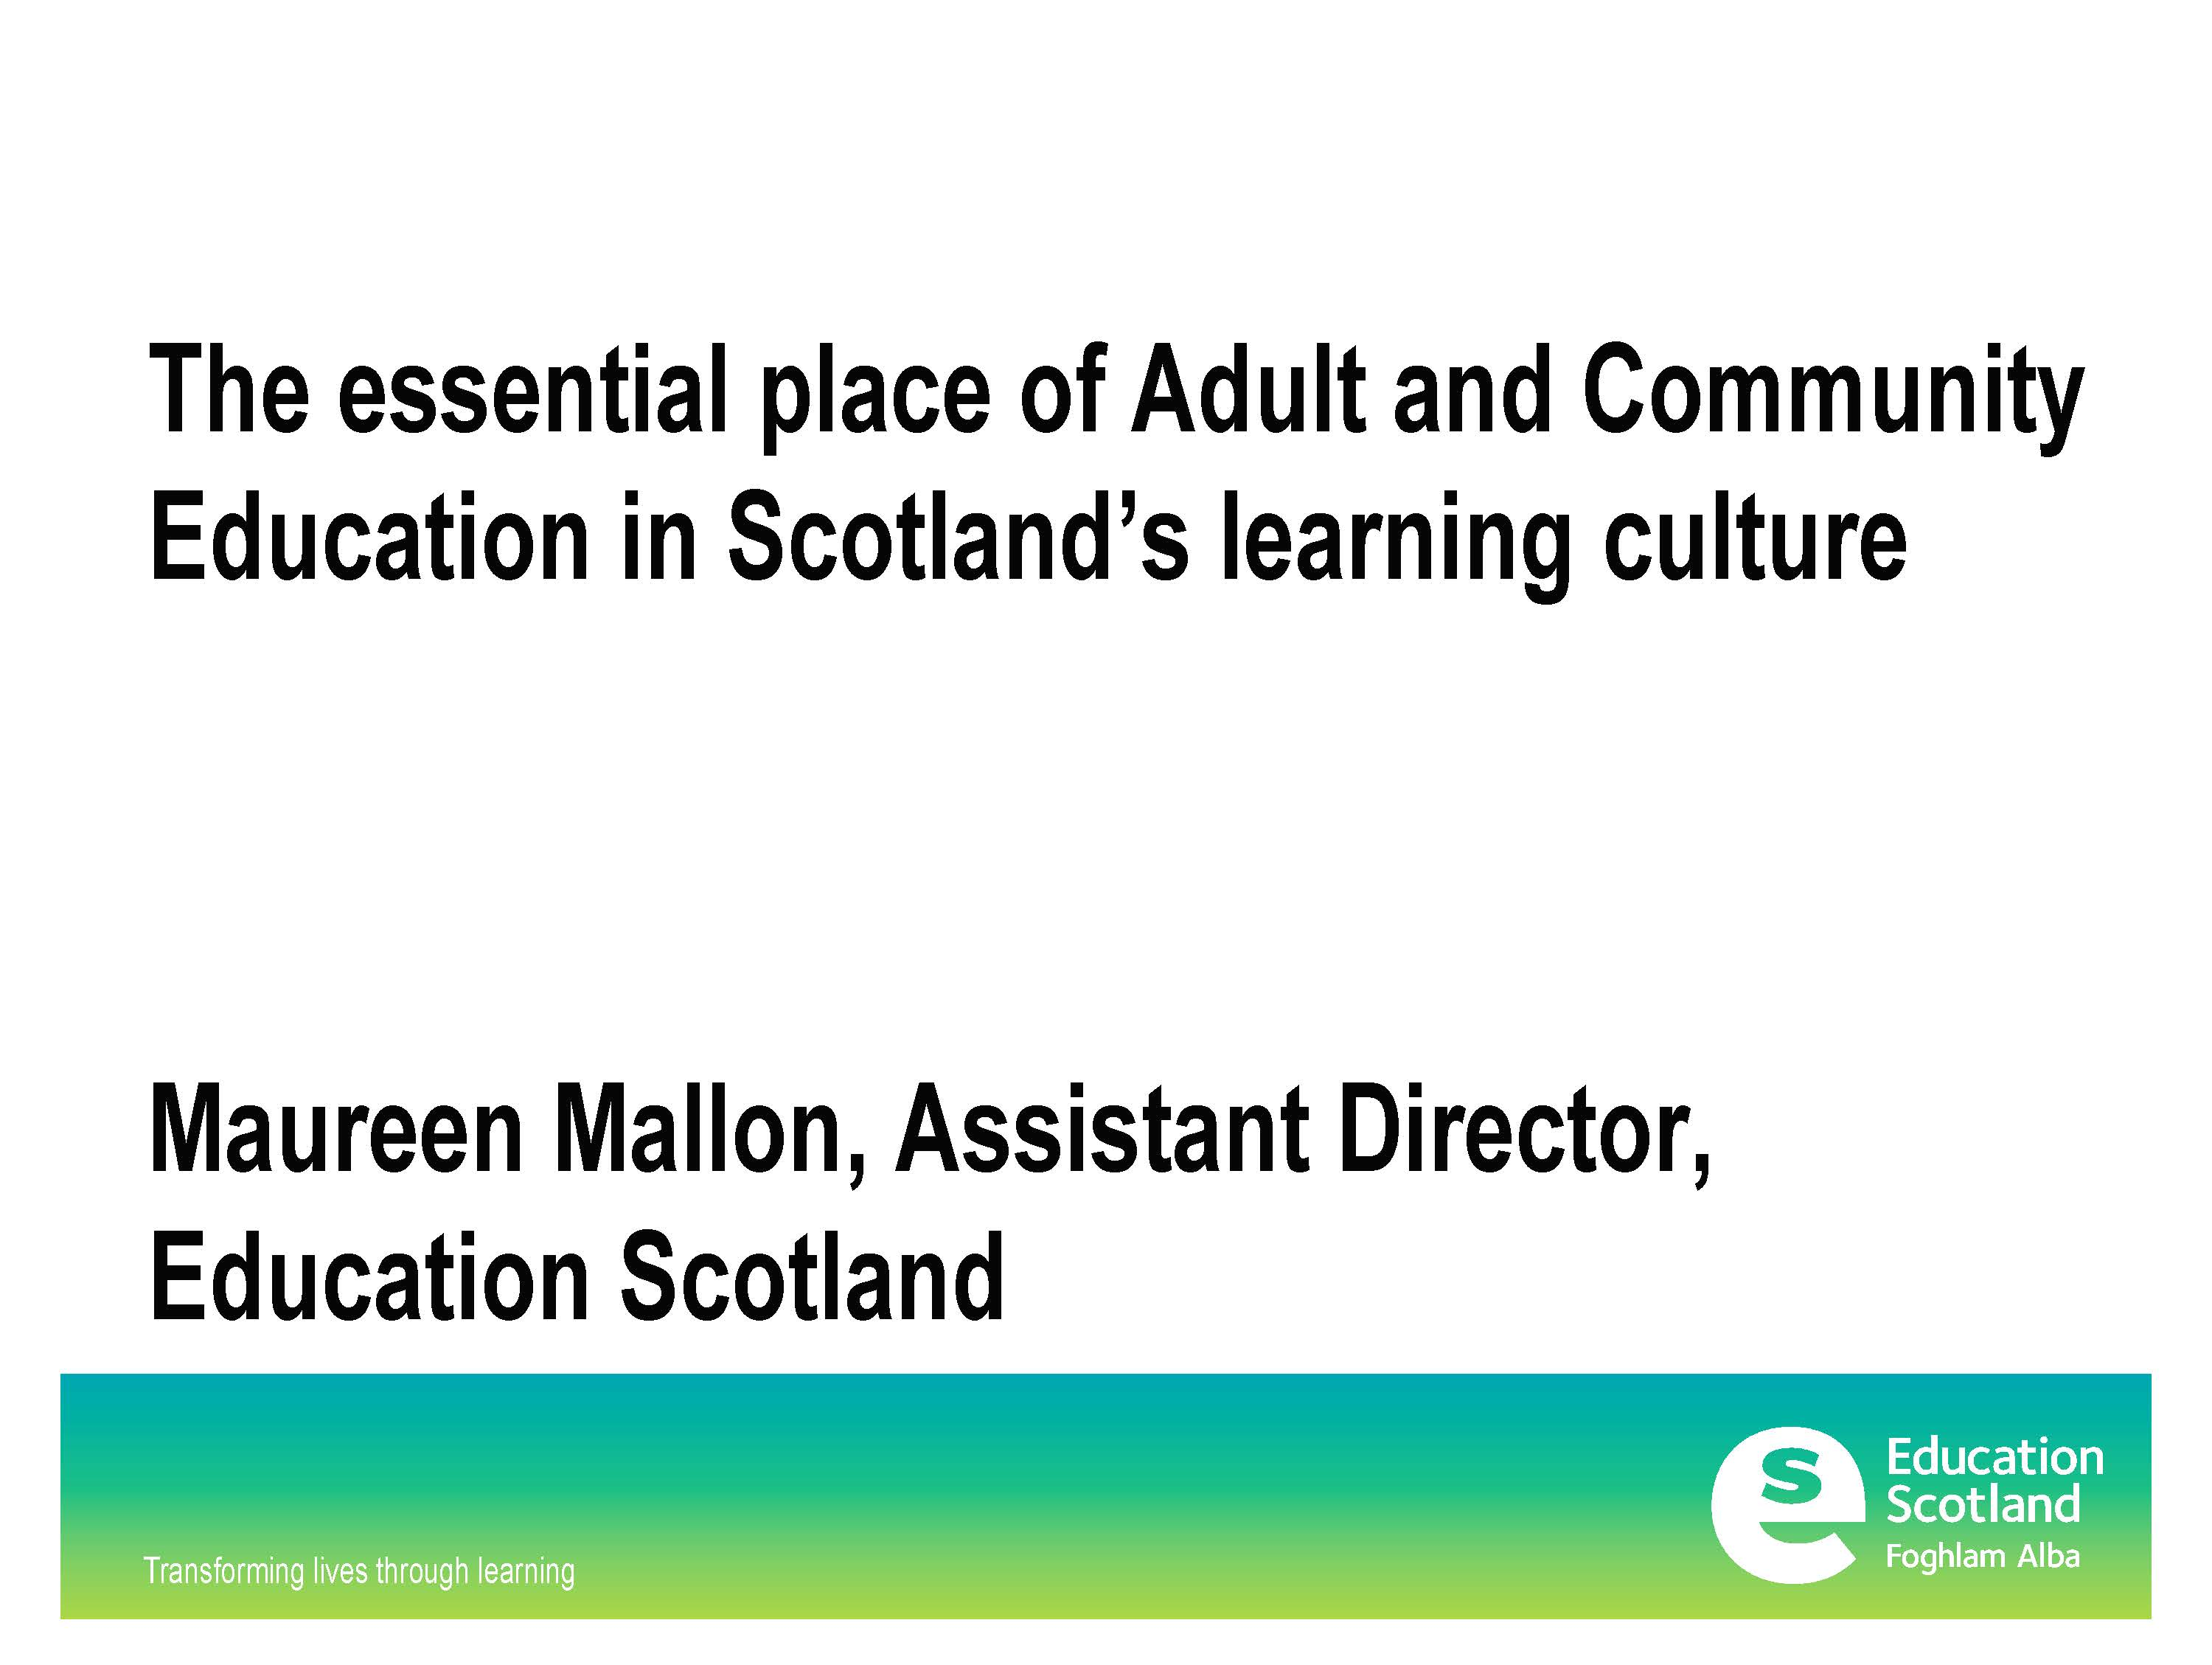 The essential place of Adult and Community Education in Scotland's learning culture. ACE Conference Presentation 2017